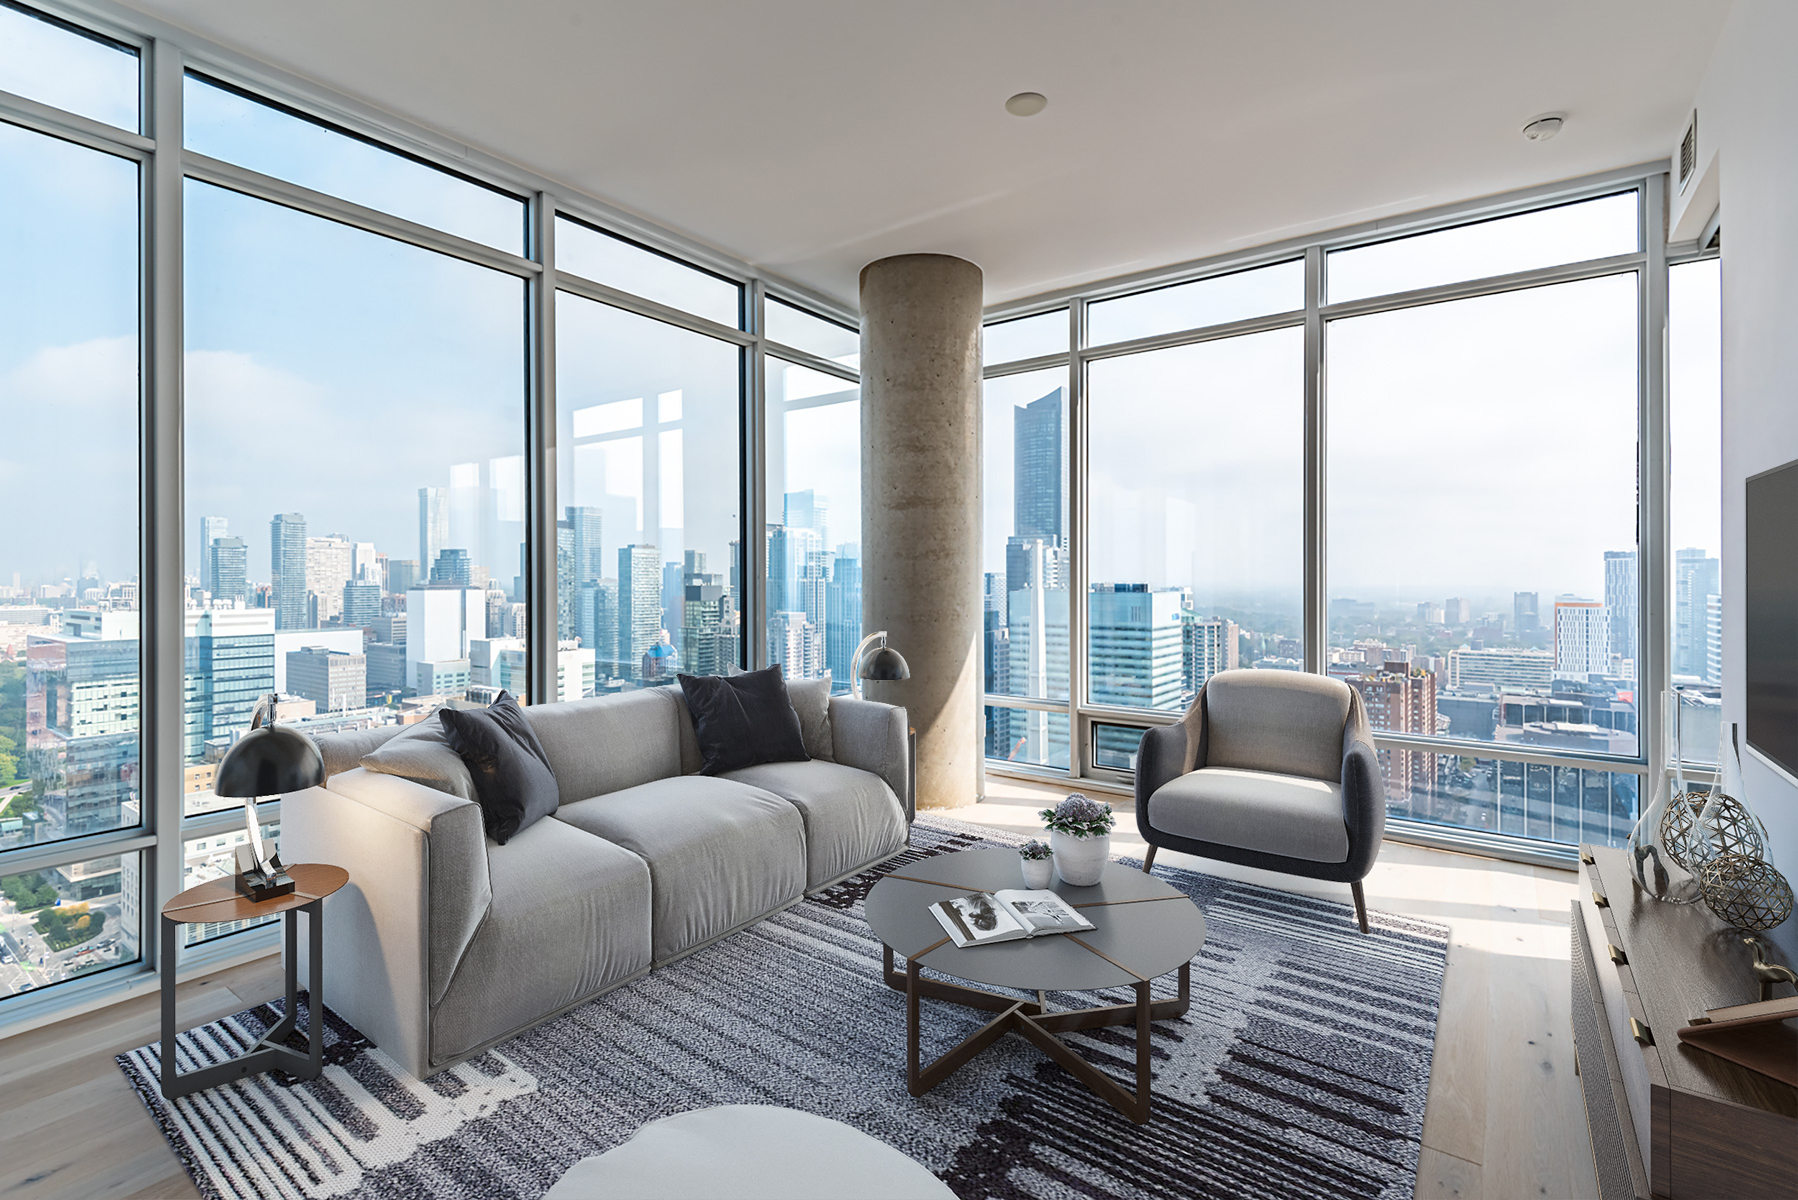 488 University Ave living room with glass walls and view of Toronto.